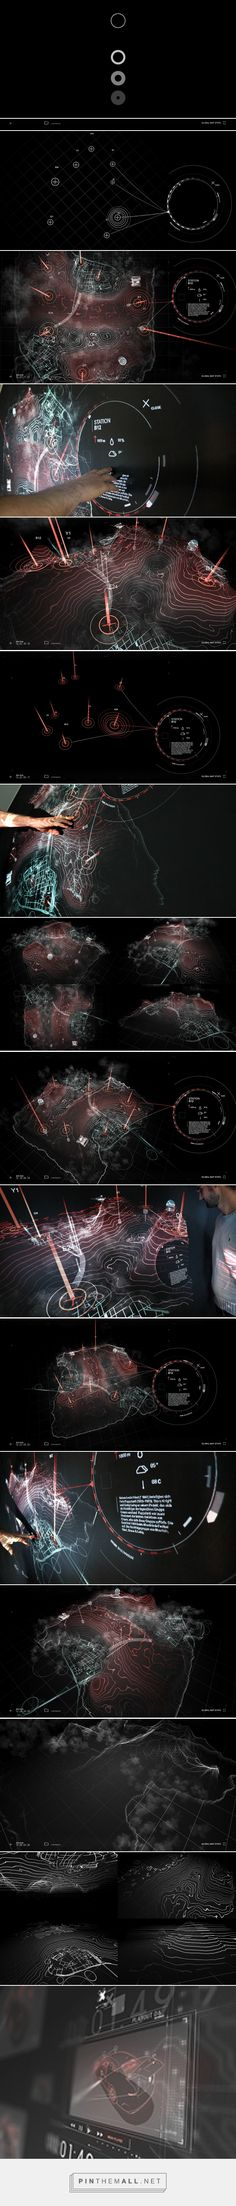 SCI Map on Behance... - a grouped images picture - Pin Them All